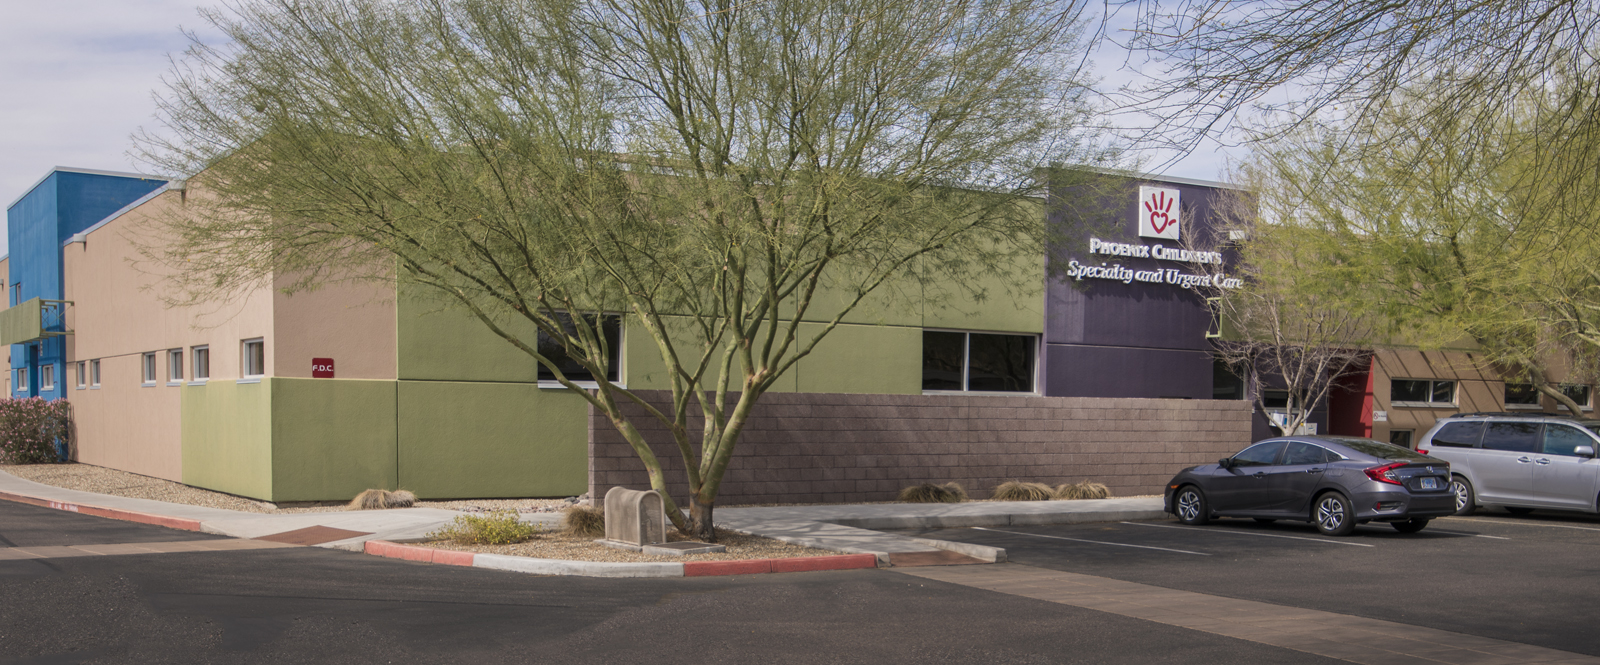 East Valley Specialty Care Center | Phoenix Children's Hospital